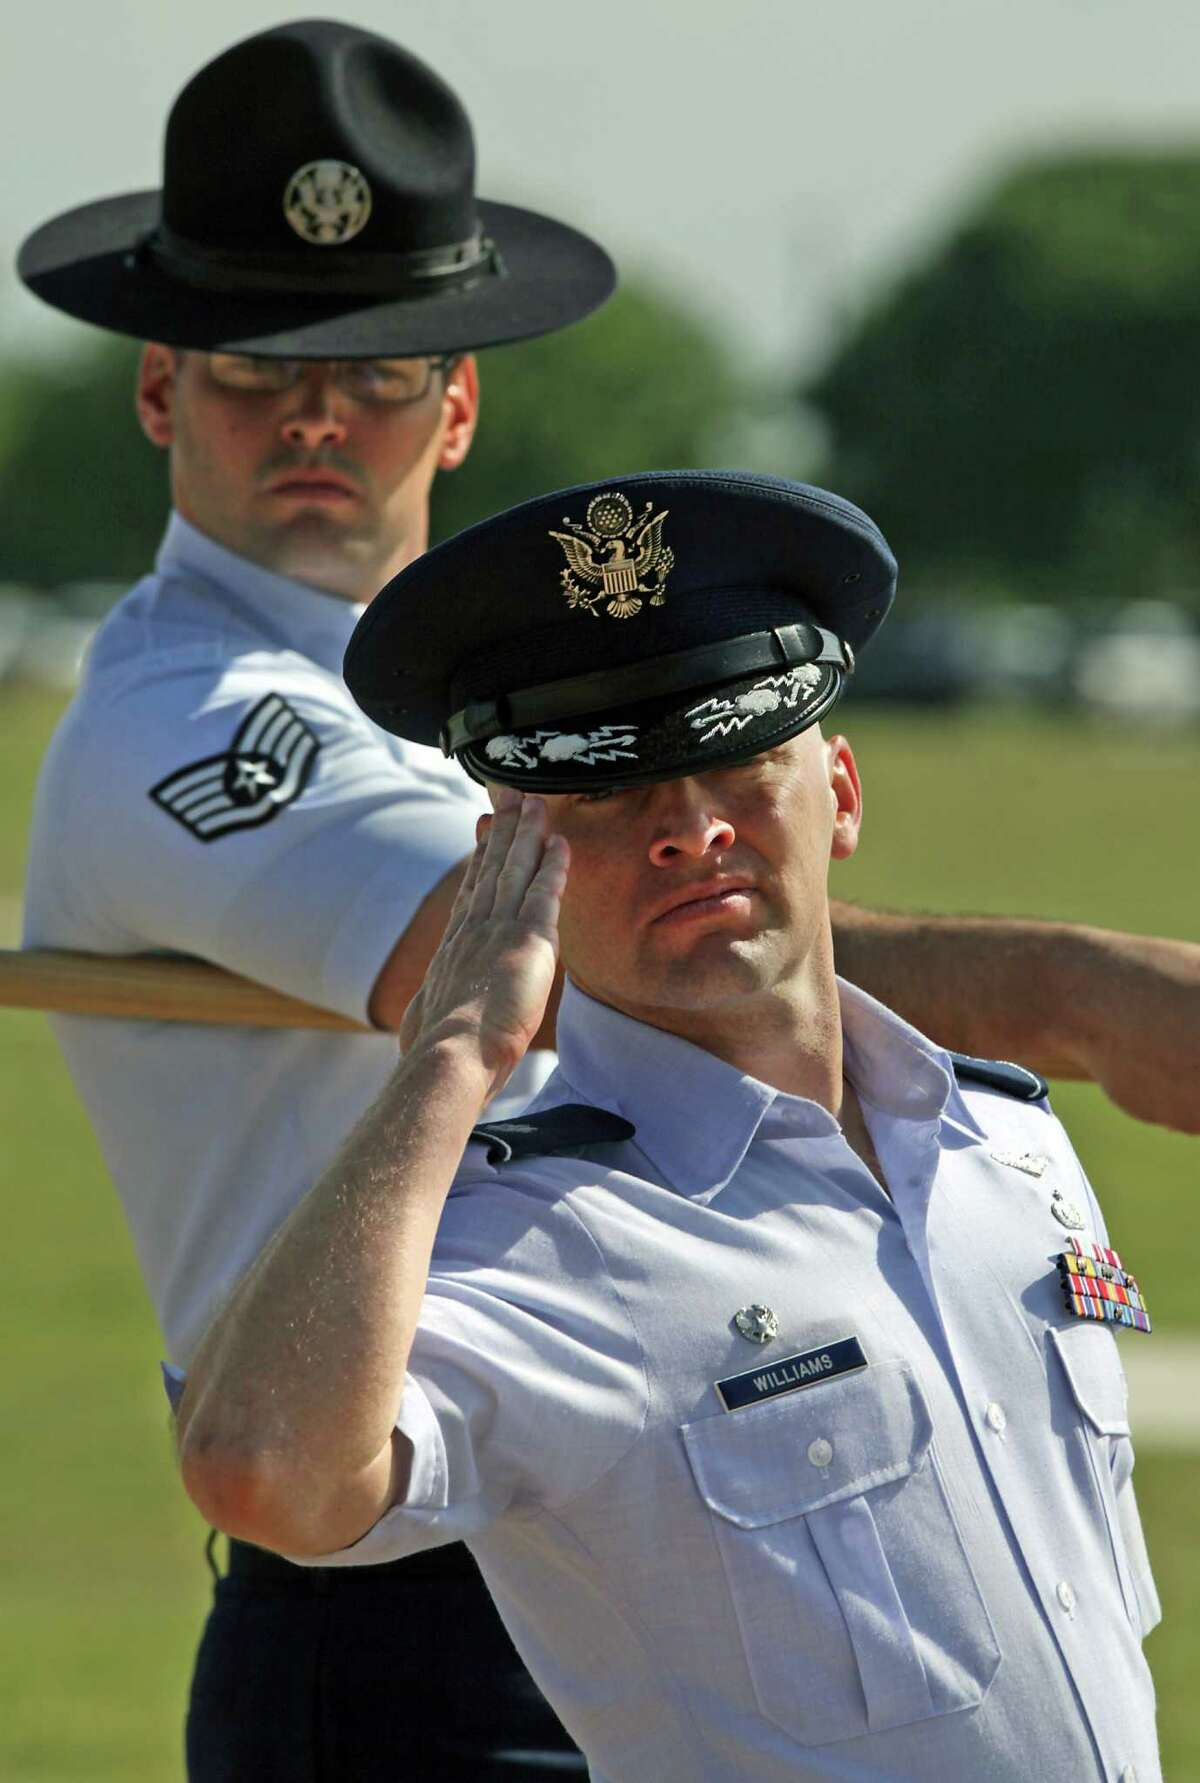 Lt. Col Christopher Williams of CA, salutes as he leads his squadron at the Lackland AFB Fiesta Military Parade, Wednesday, April 25, 2012.